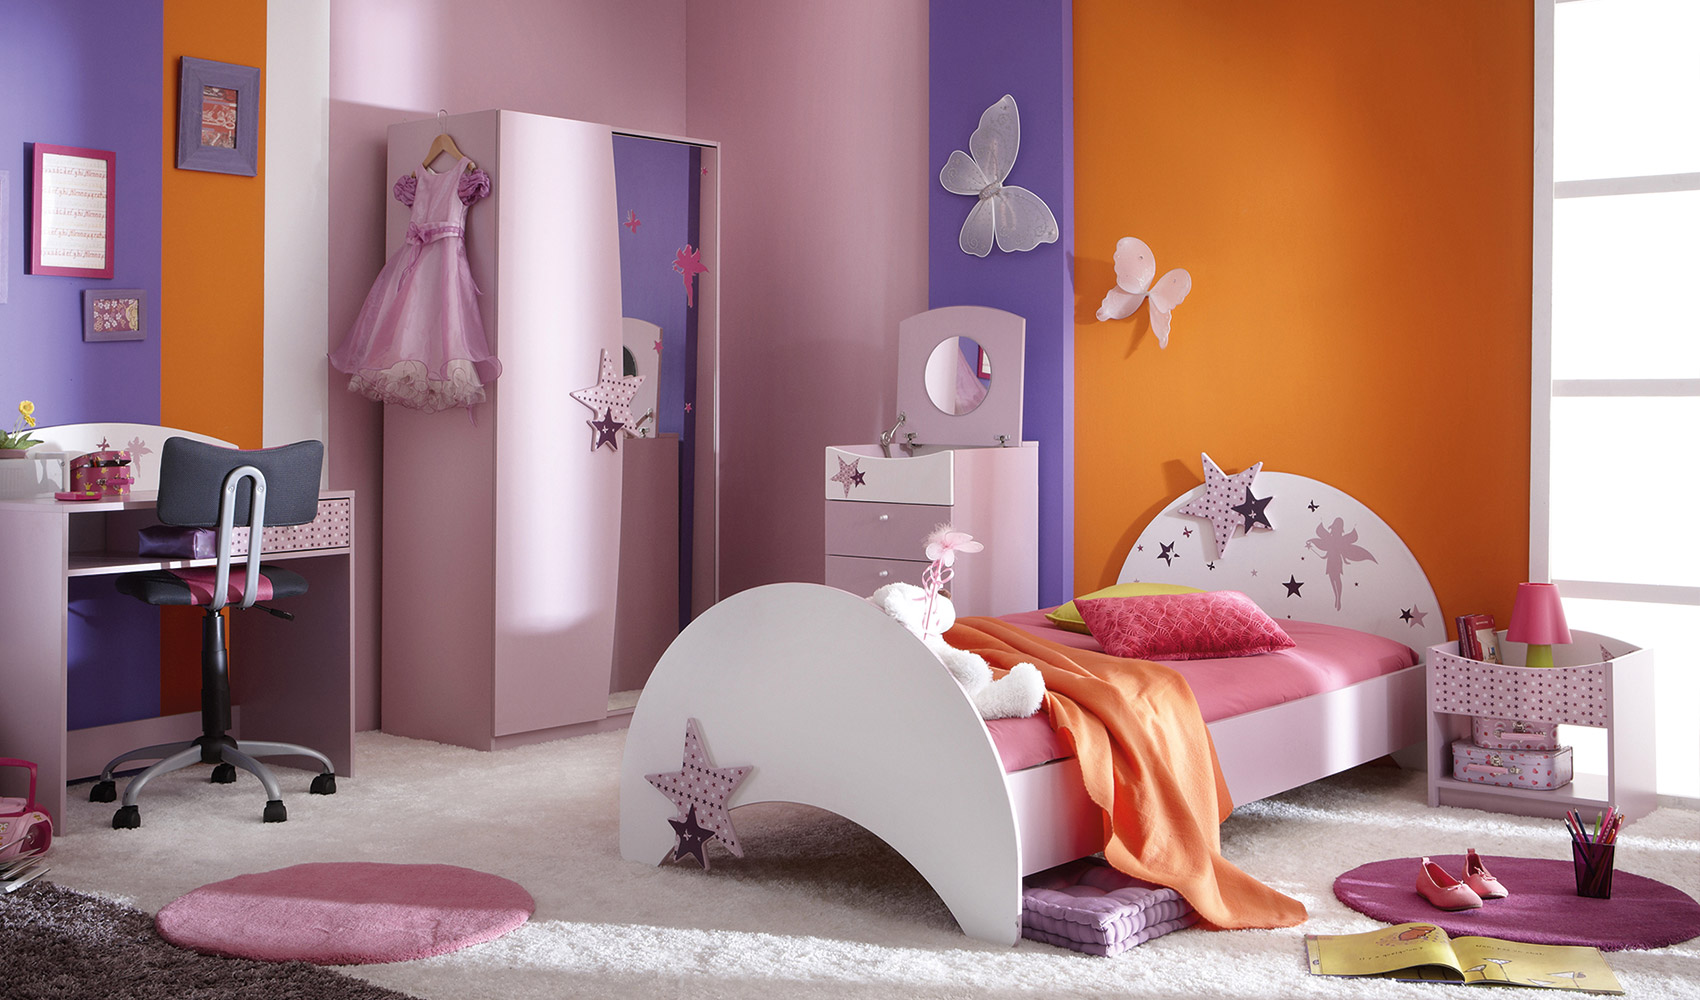 kinderbett m dchenbett jugendbett rosa bett prinzessin. Black Bedroom Furniture Sets. Home Design Ideas